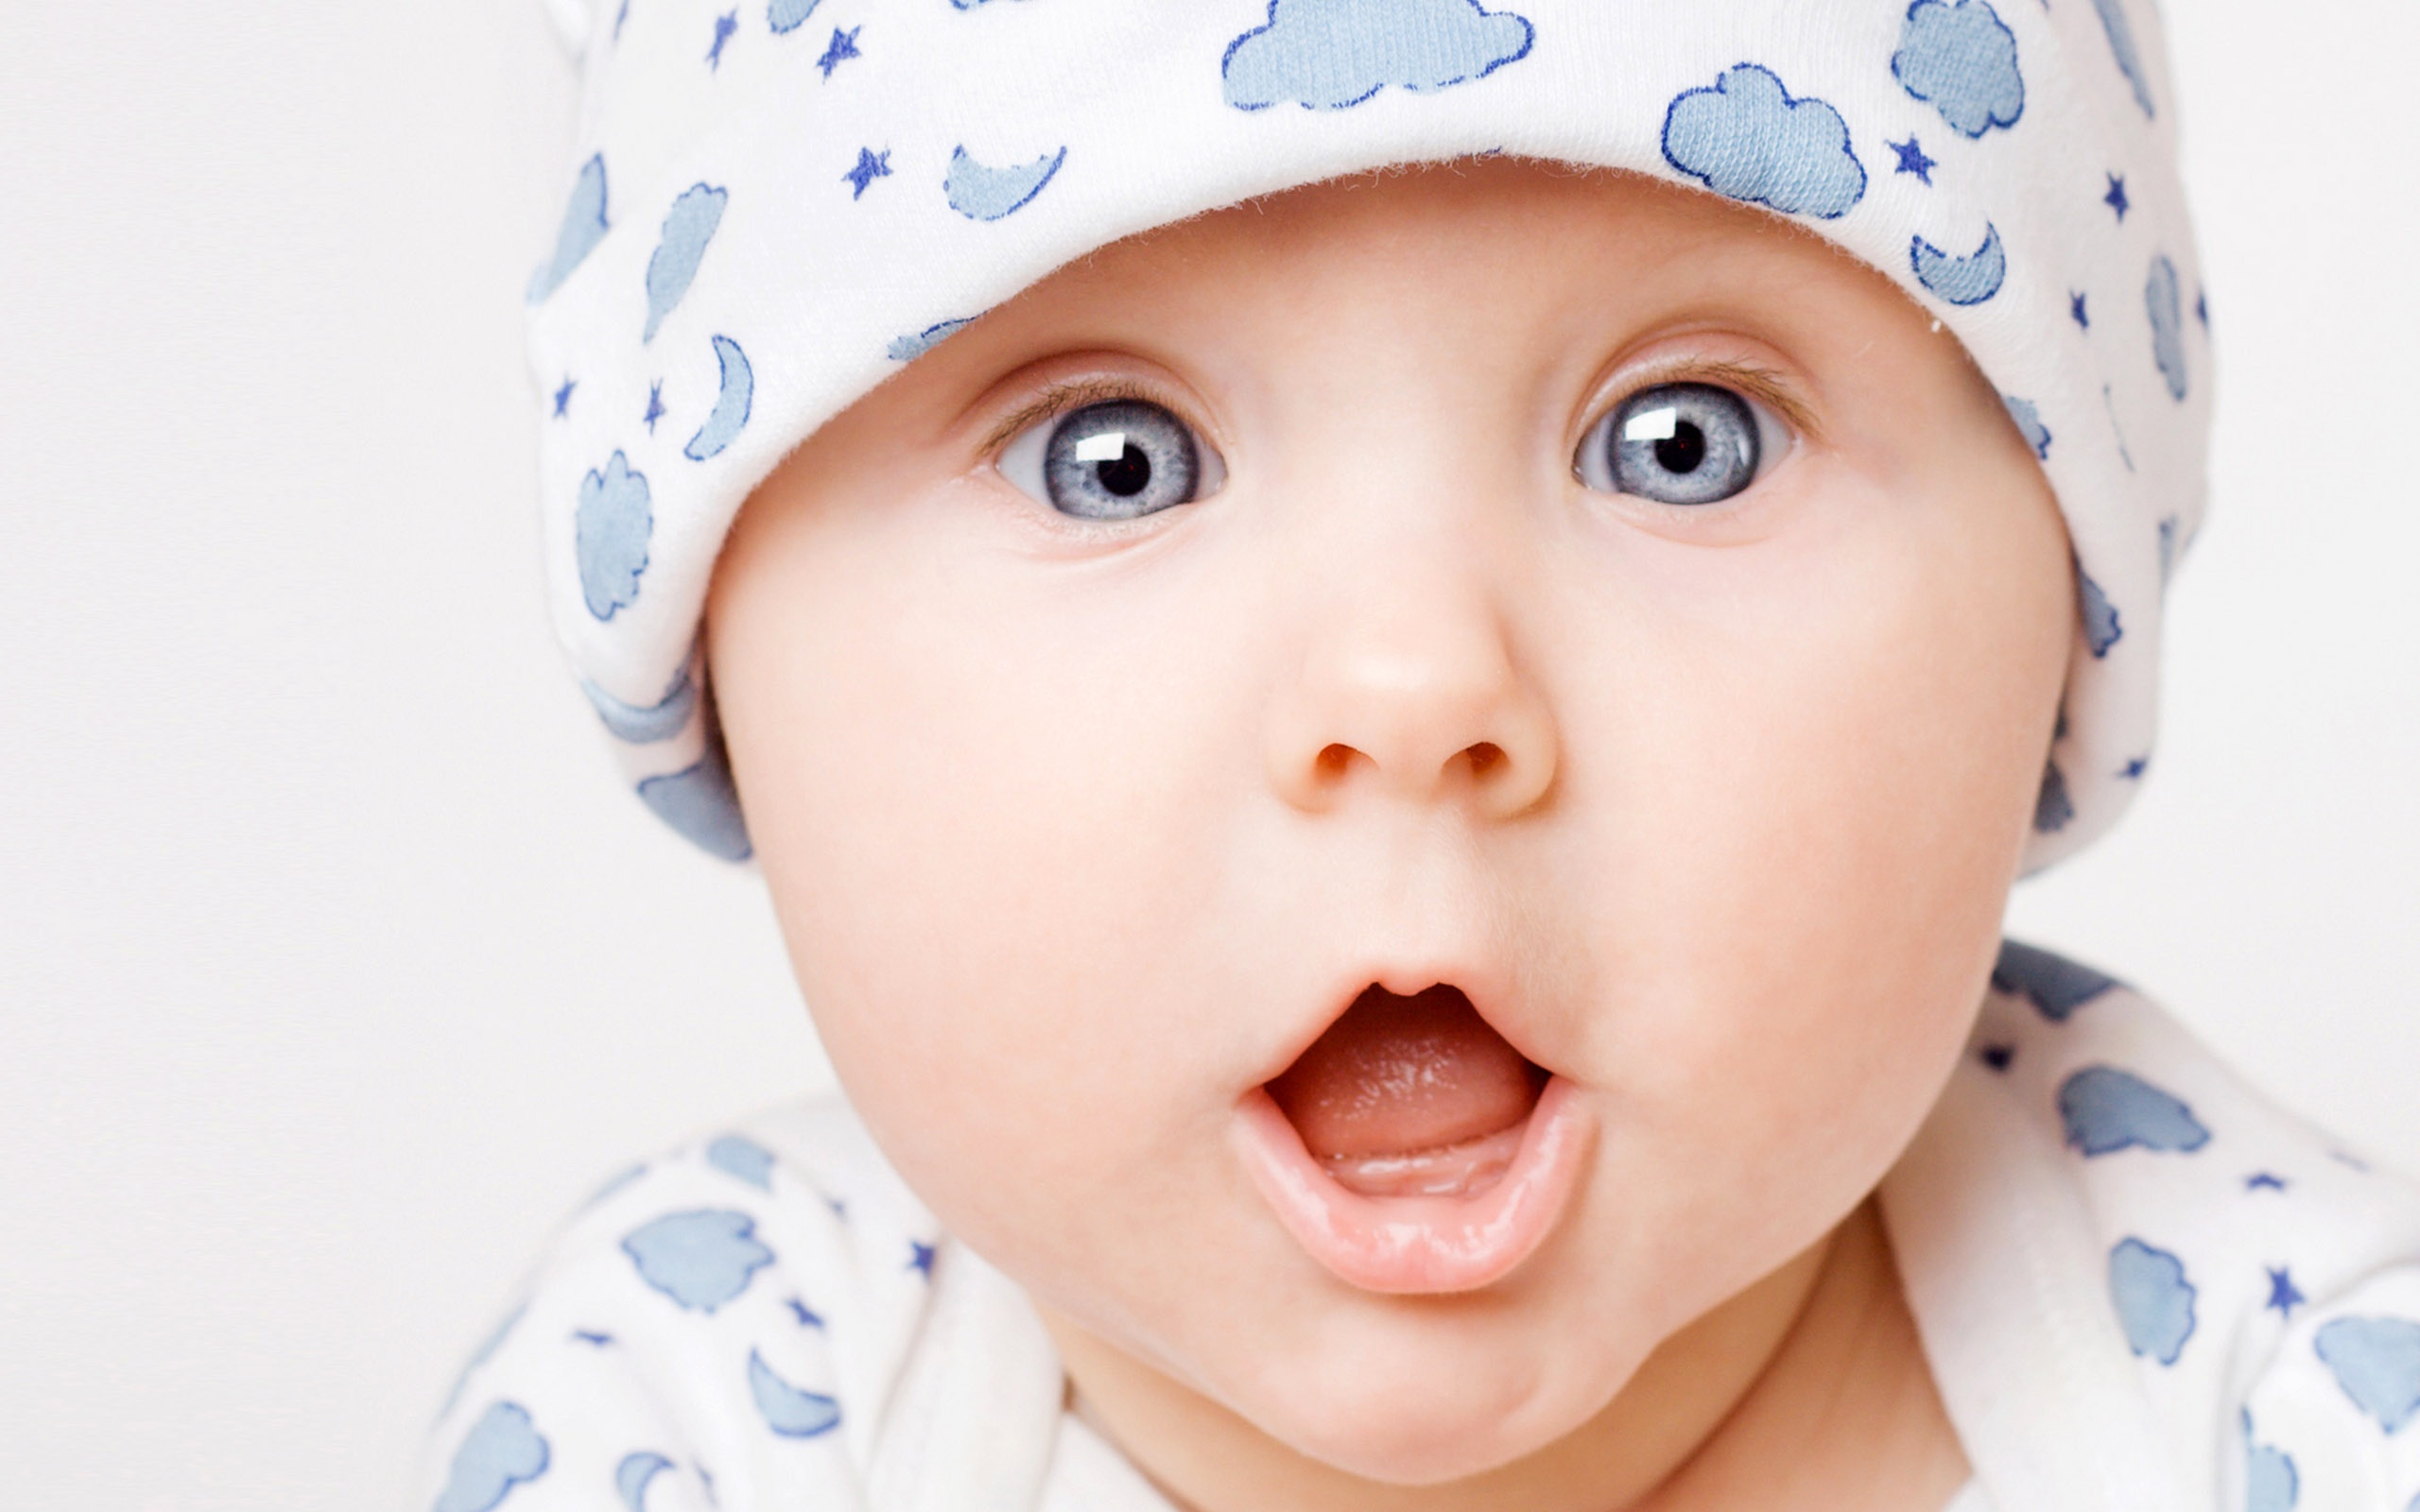 Cute baby surprise 2560x1600